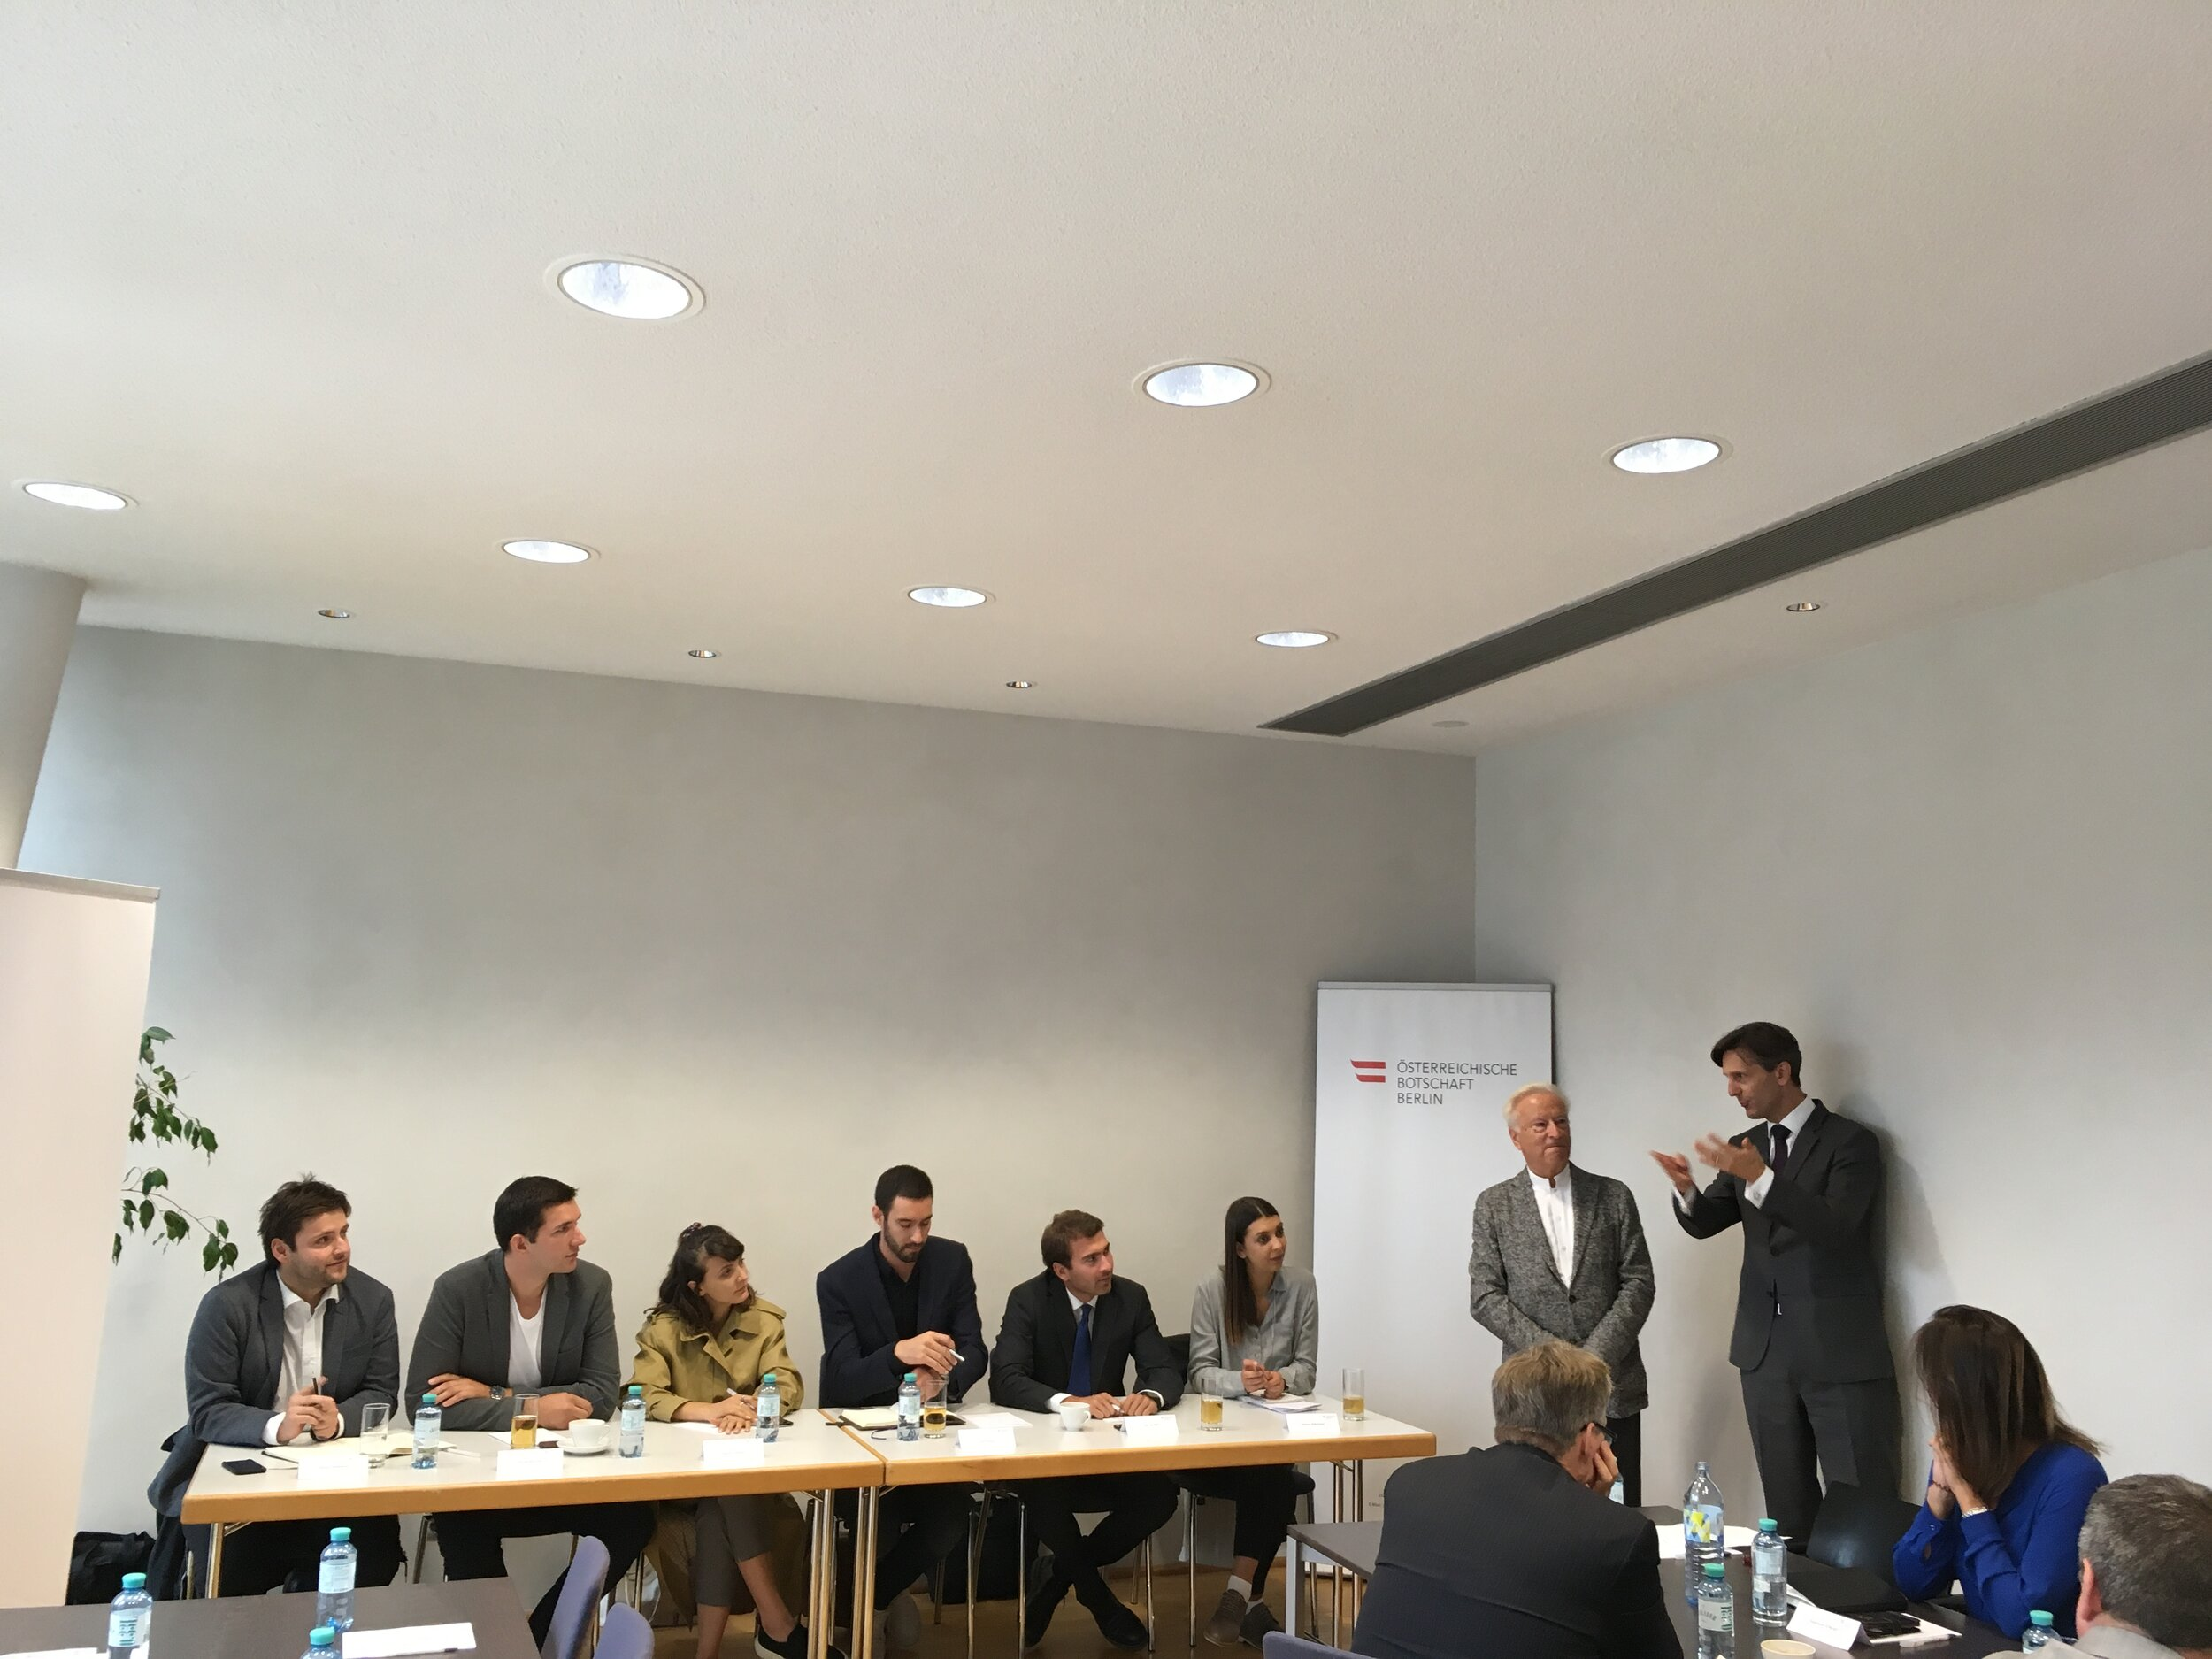 Panel Discussion at the Austrian Embassy in Berlin